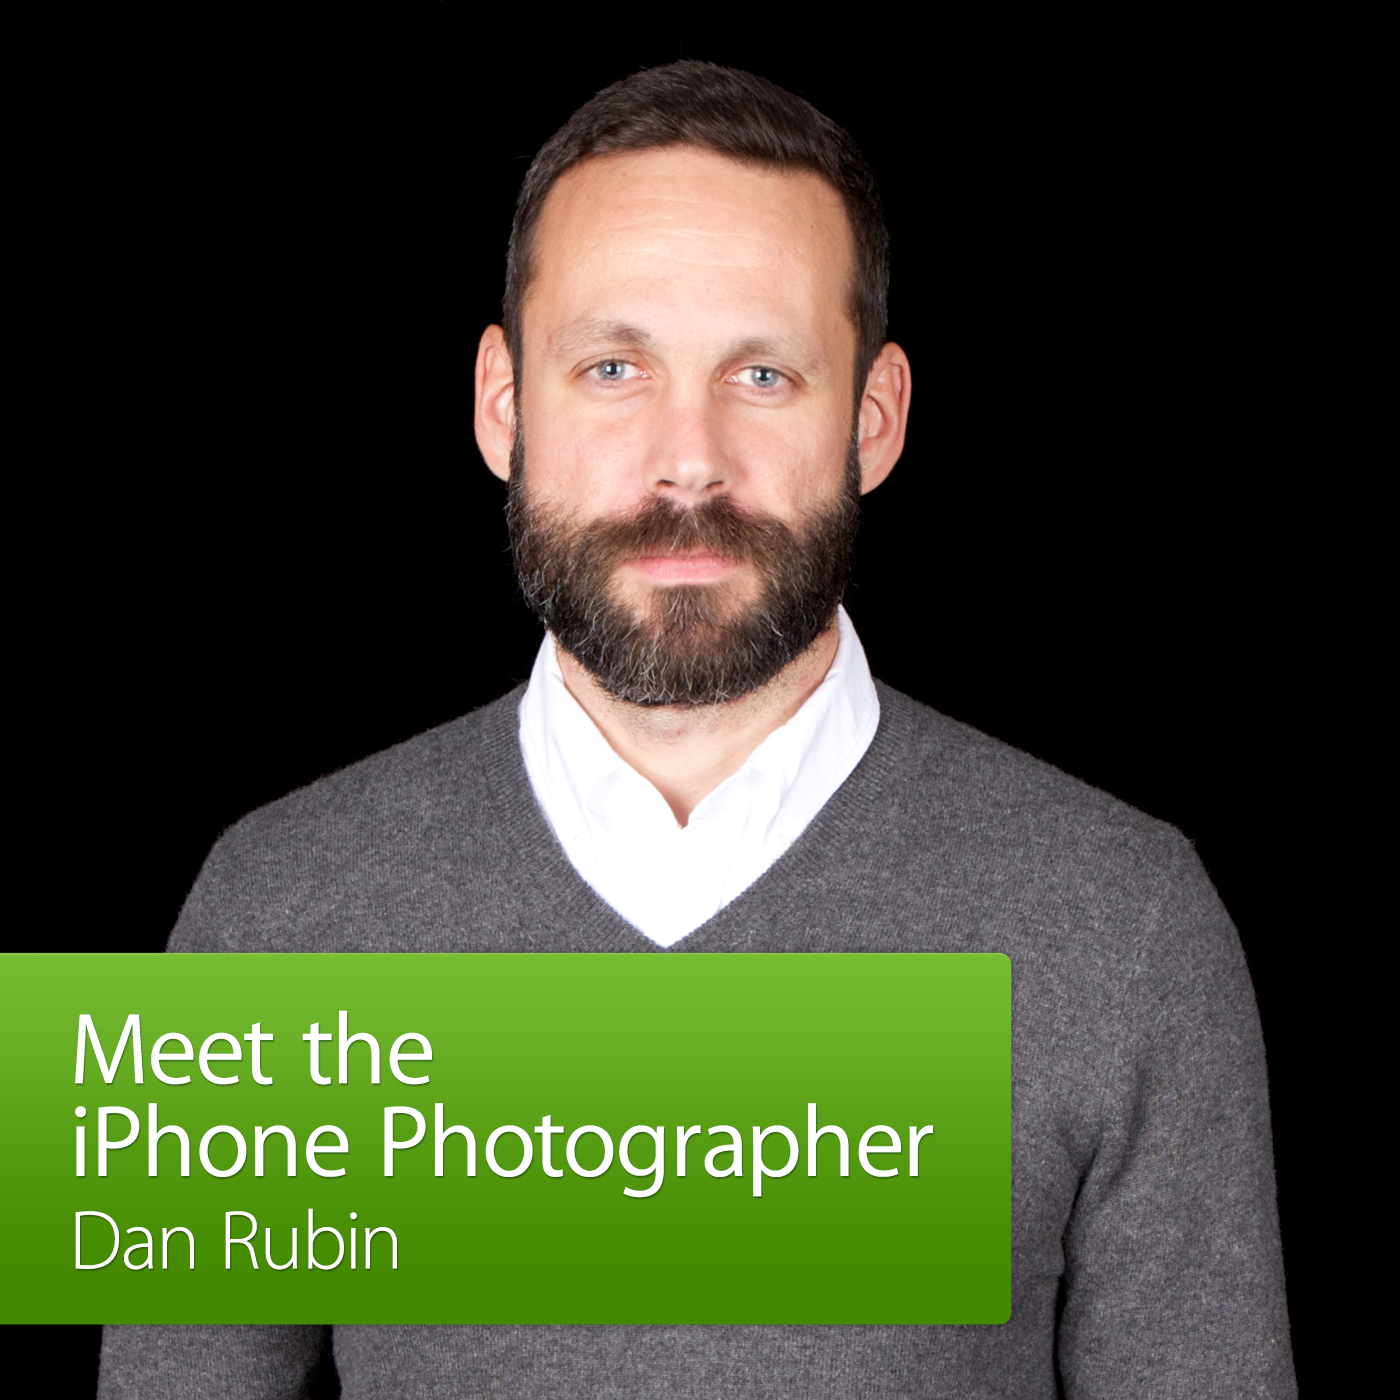 Dan Rubin: Meet the iPhone Photographer